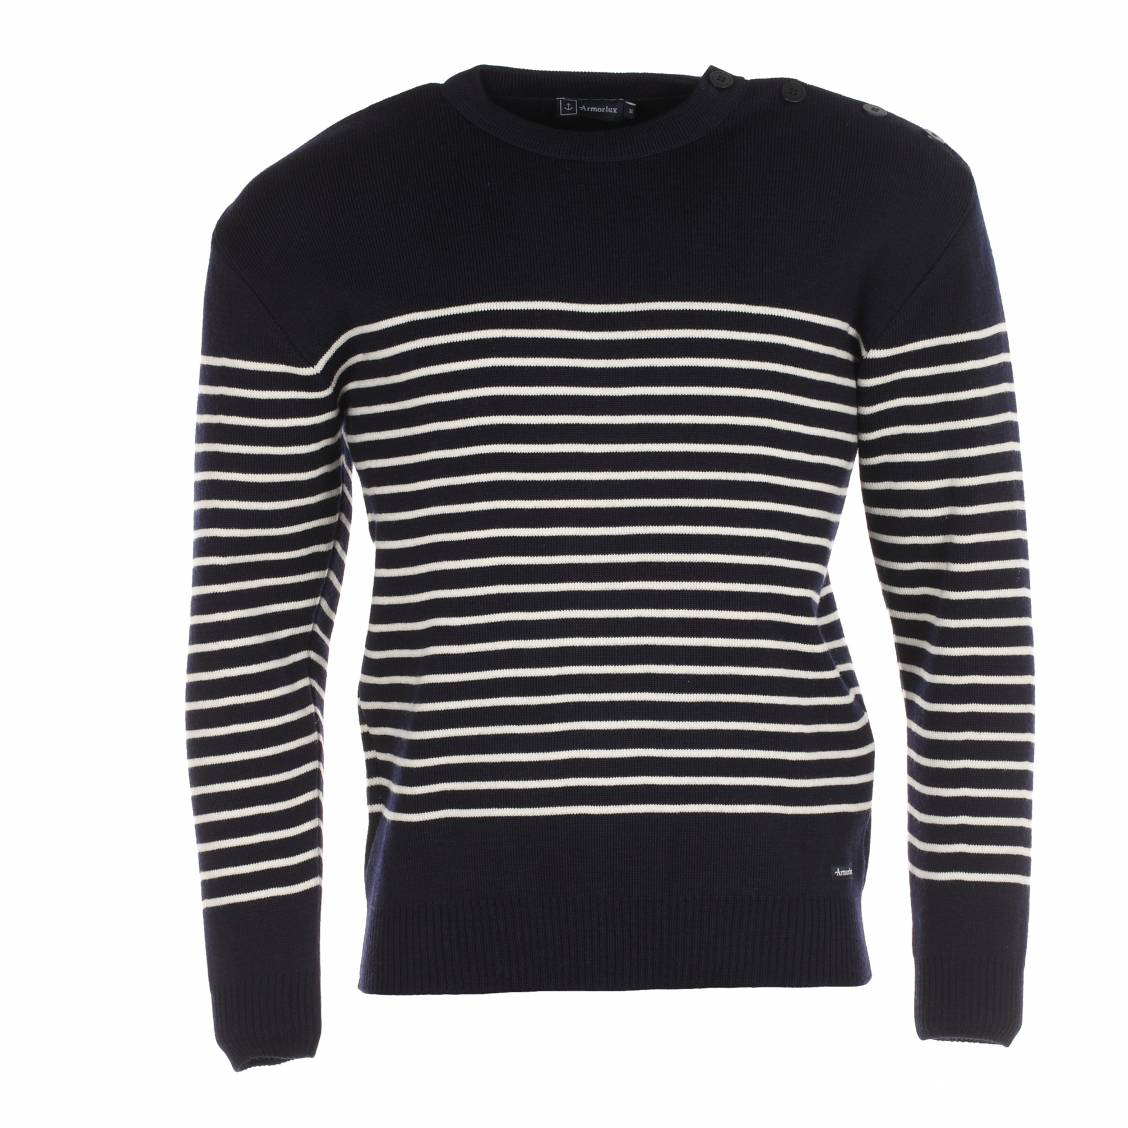 """Souvent Pull Marin """"Dumet"""" Armor lux 100% laine marine à rayures blanches  QW44"""